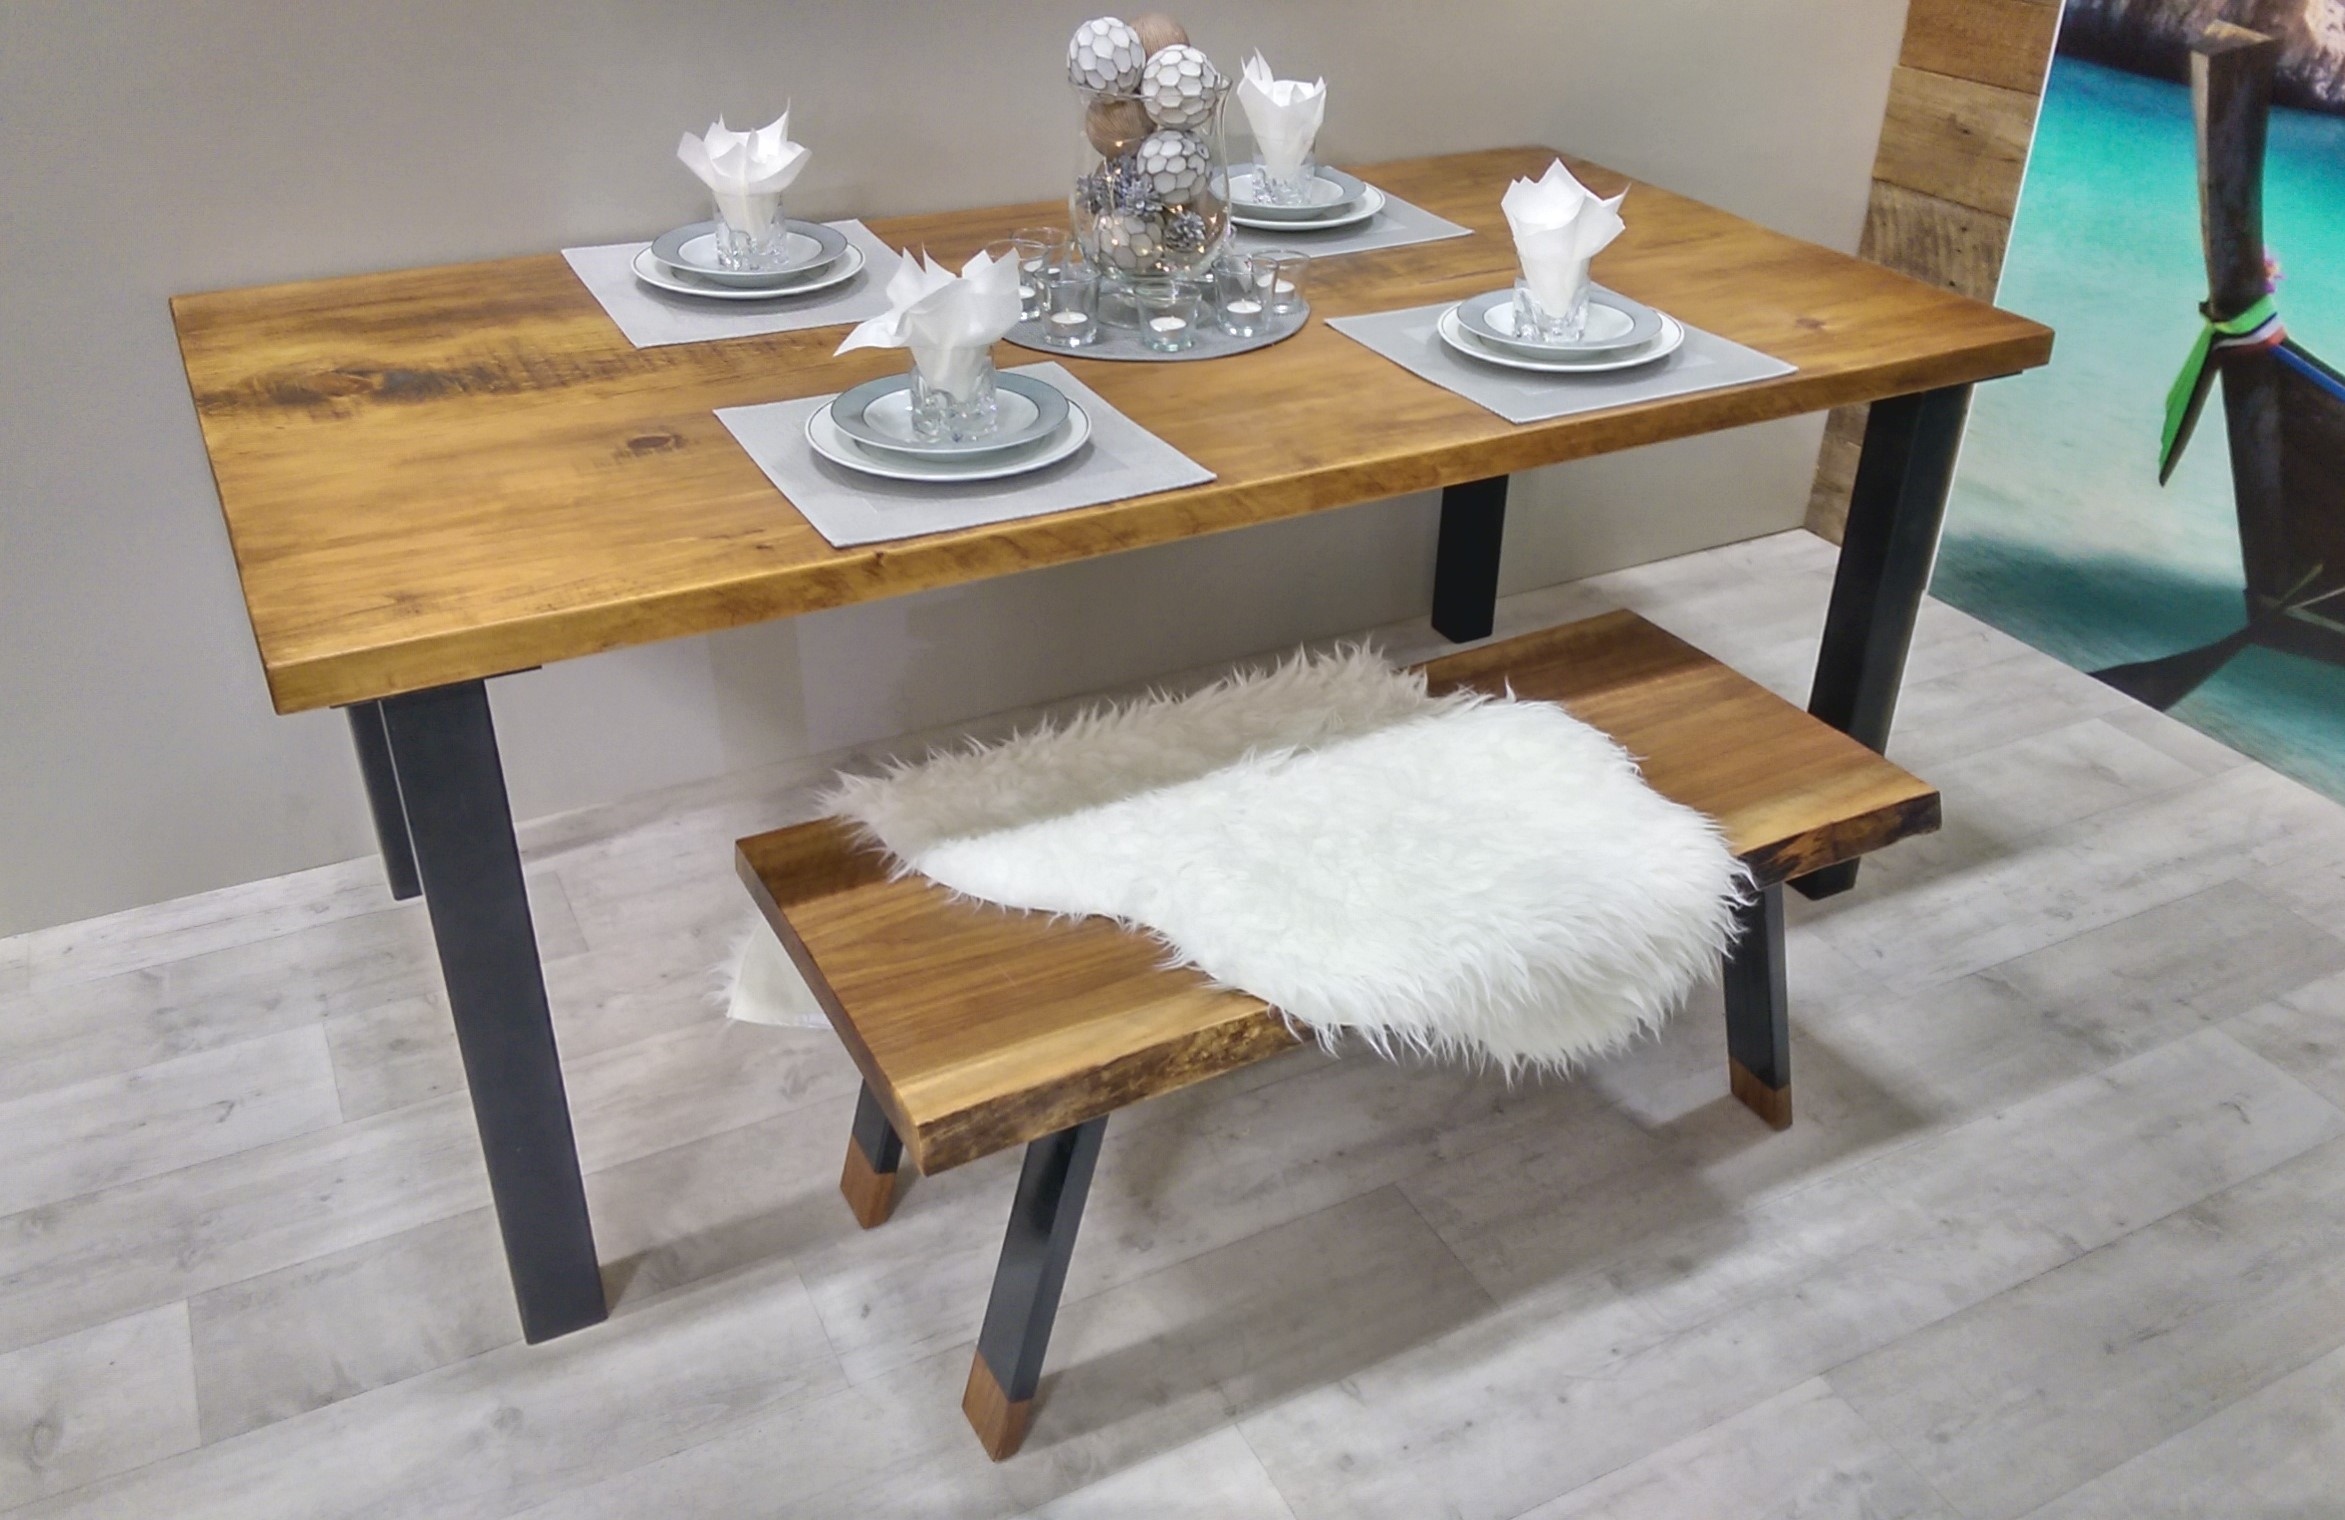 table de cuisine rustika en bois m tal table d ner rustique chic. Black Bedroom Furniture Sets. Home Design Ideas